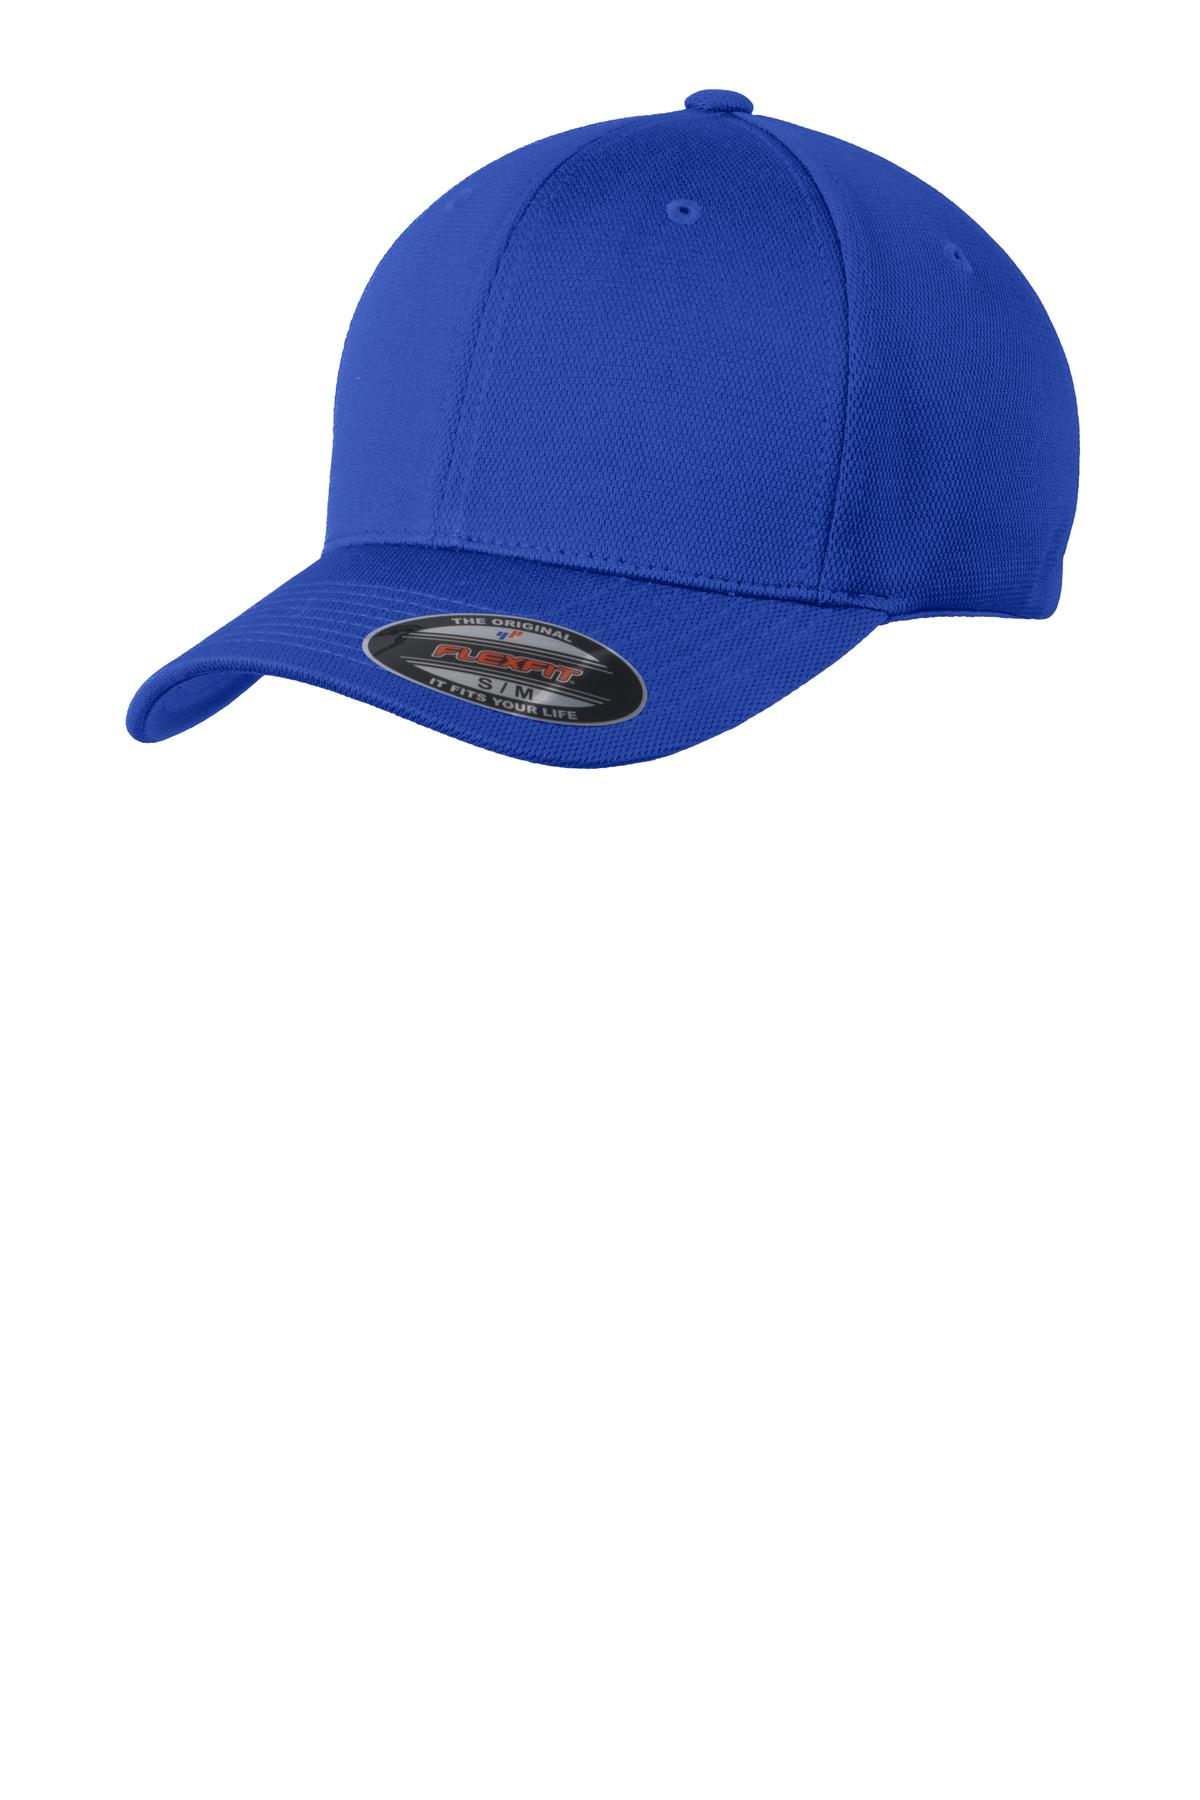 Sport-Tek ®  Flexfit ®  Cool & Dry Poly Block Mesh Cap. STC22 - True Royal